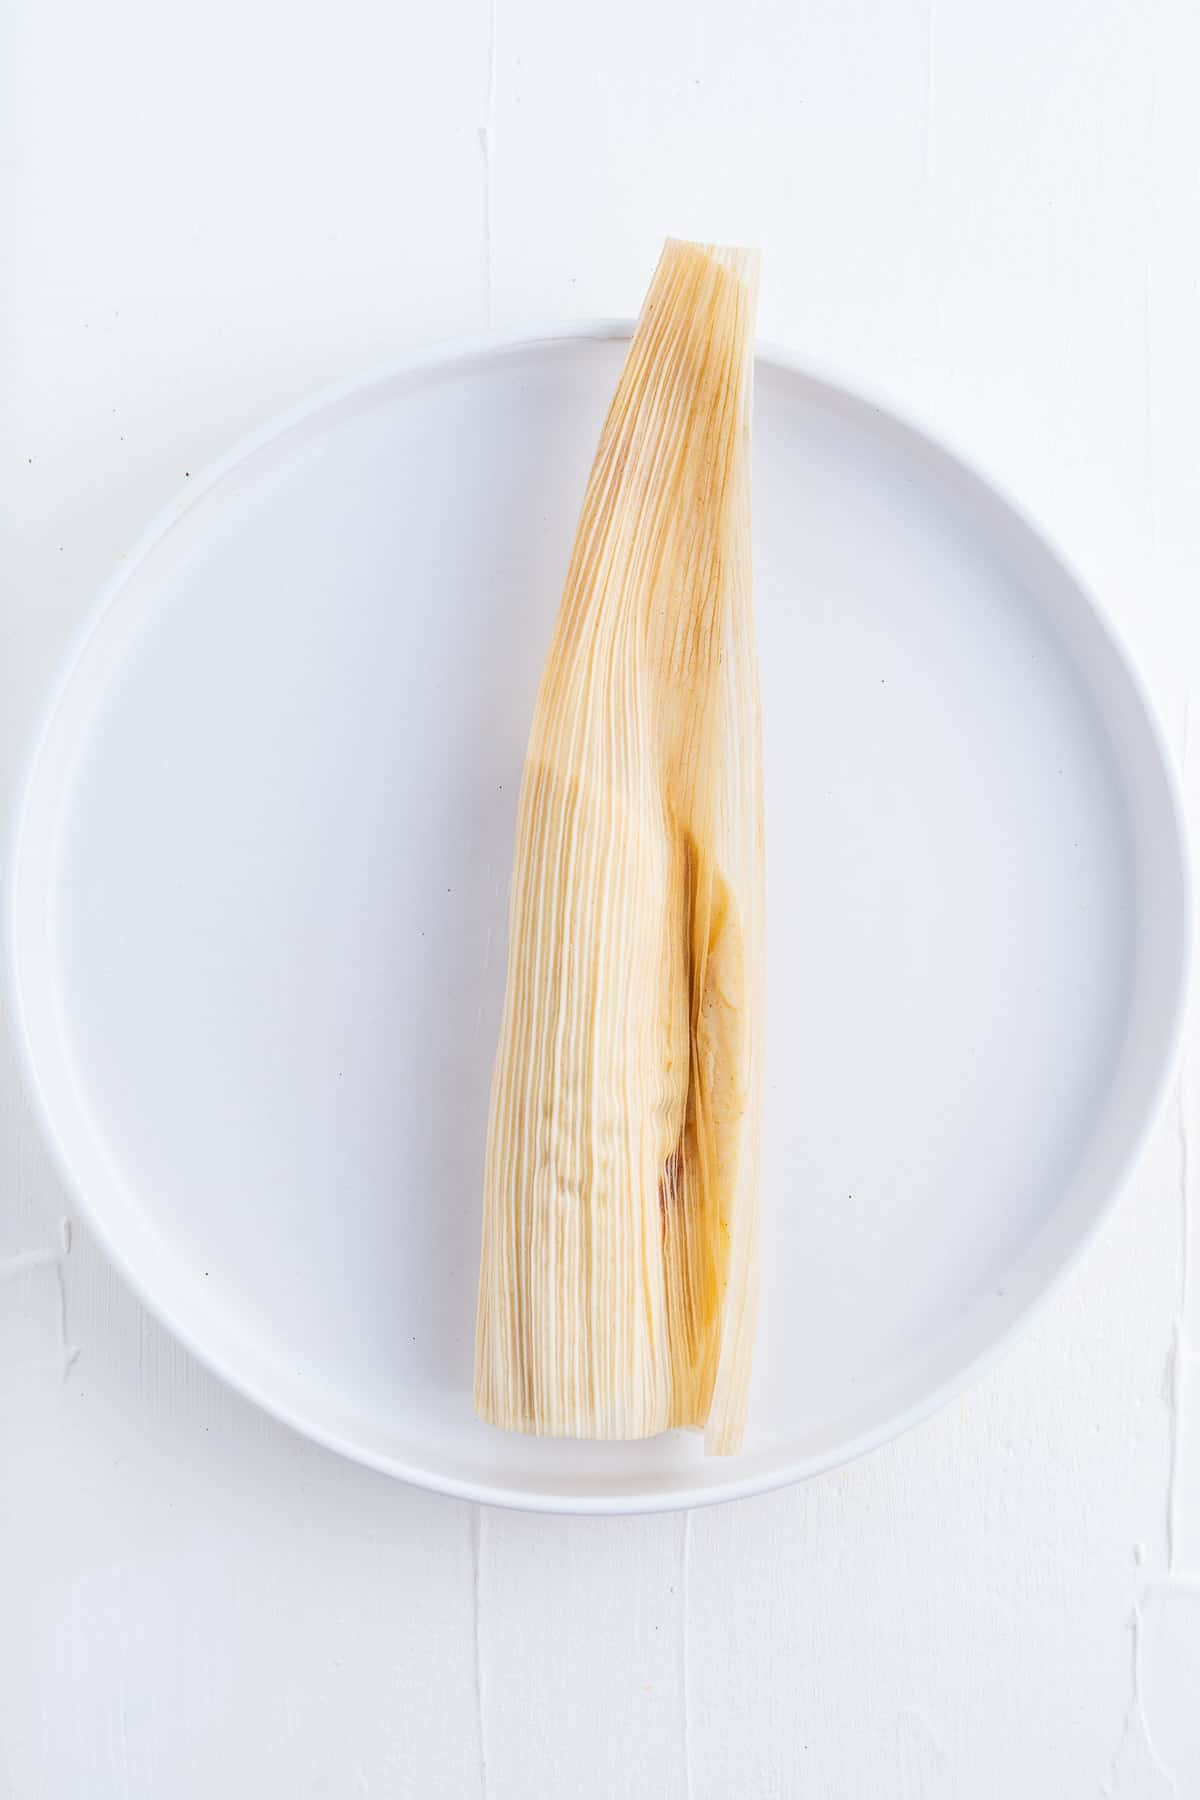 Corn Husk Wrapped Around Dough